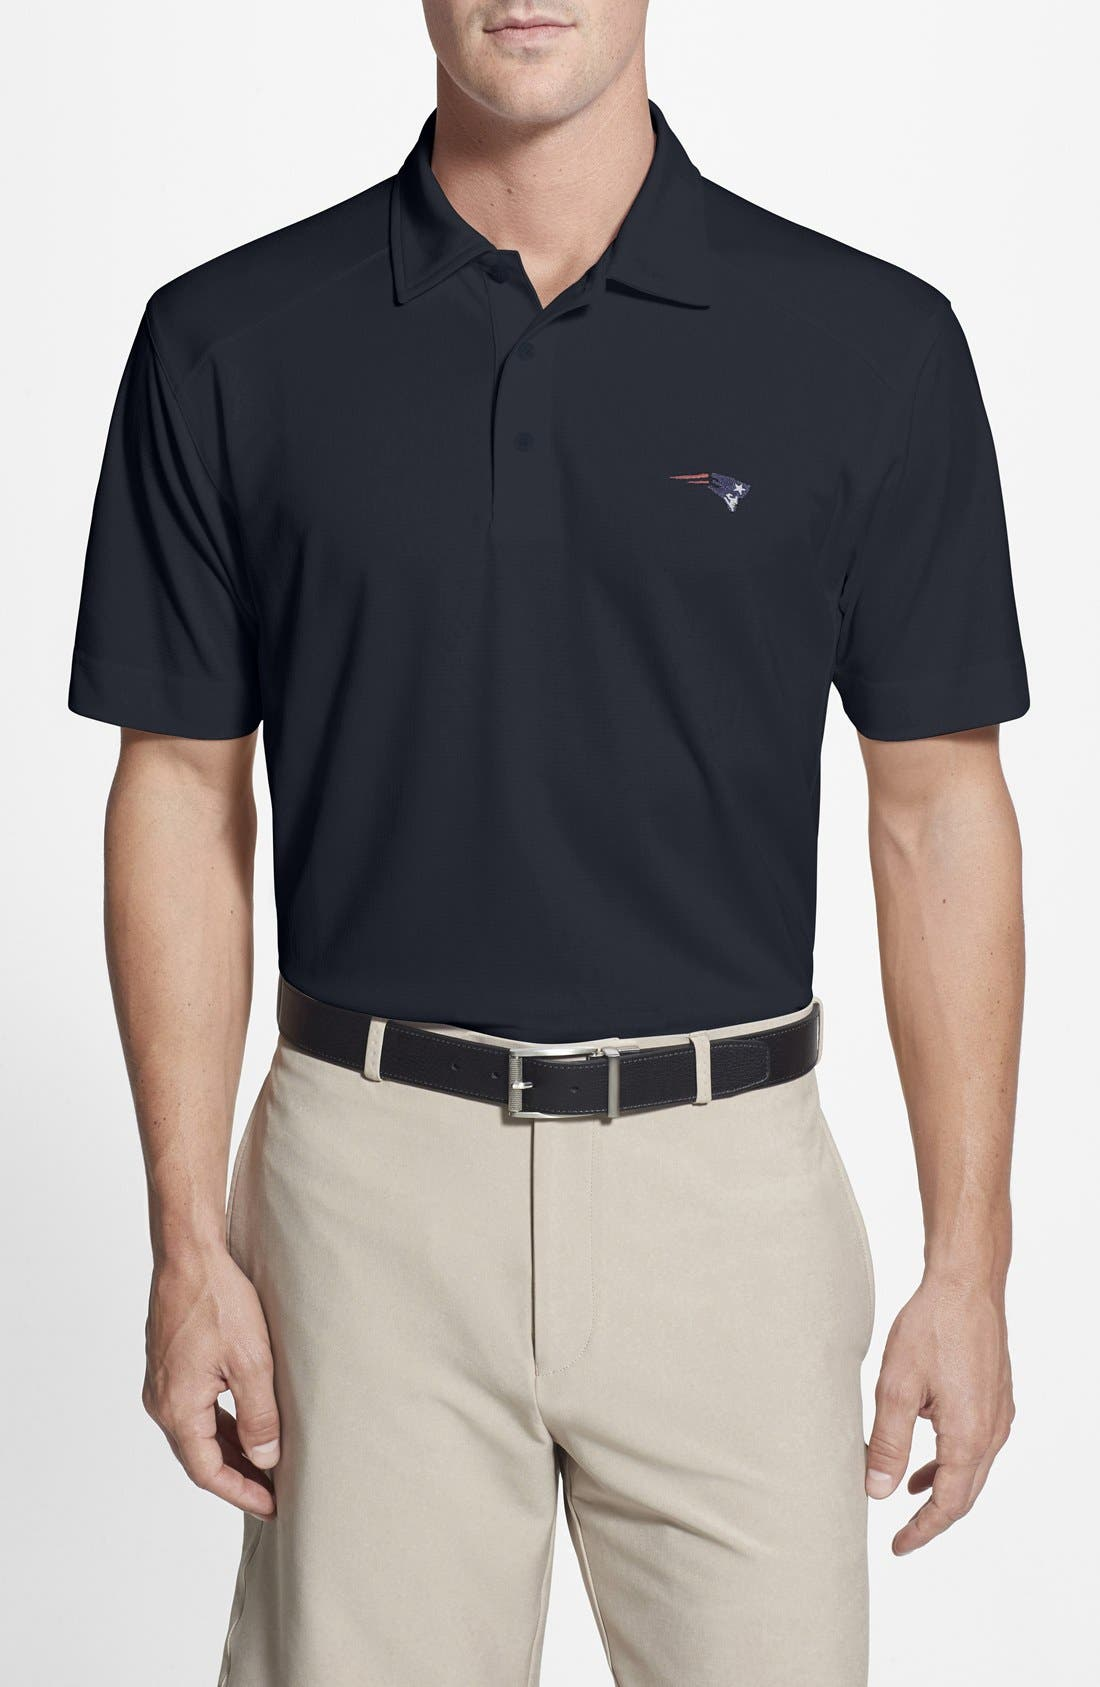 Cutter & Buck 'New England Patriots - Genre' DryTec Moisture Wicking Polo (Big & Tall)